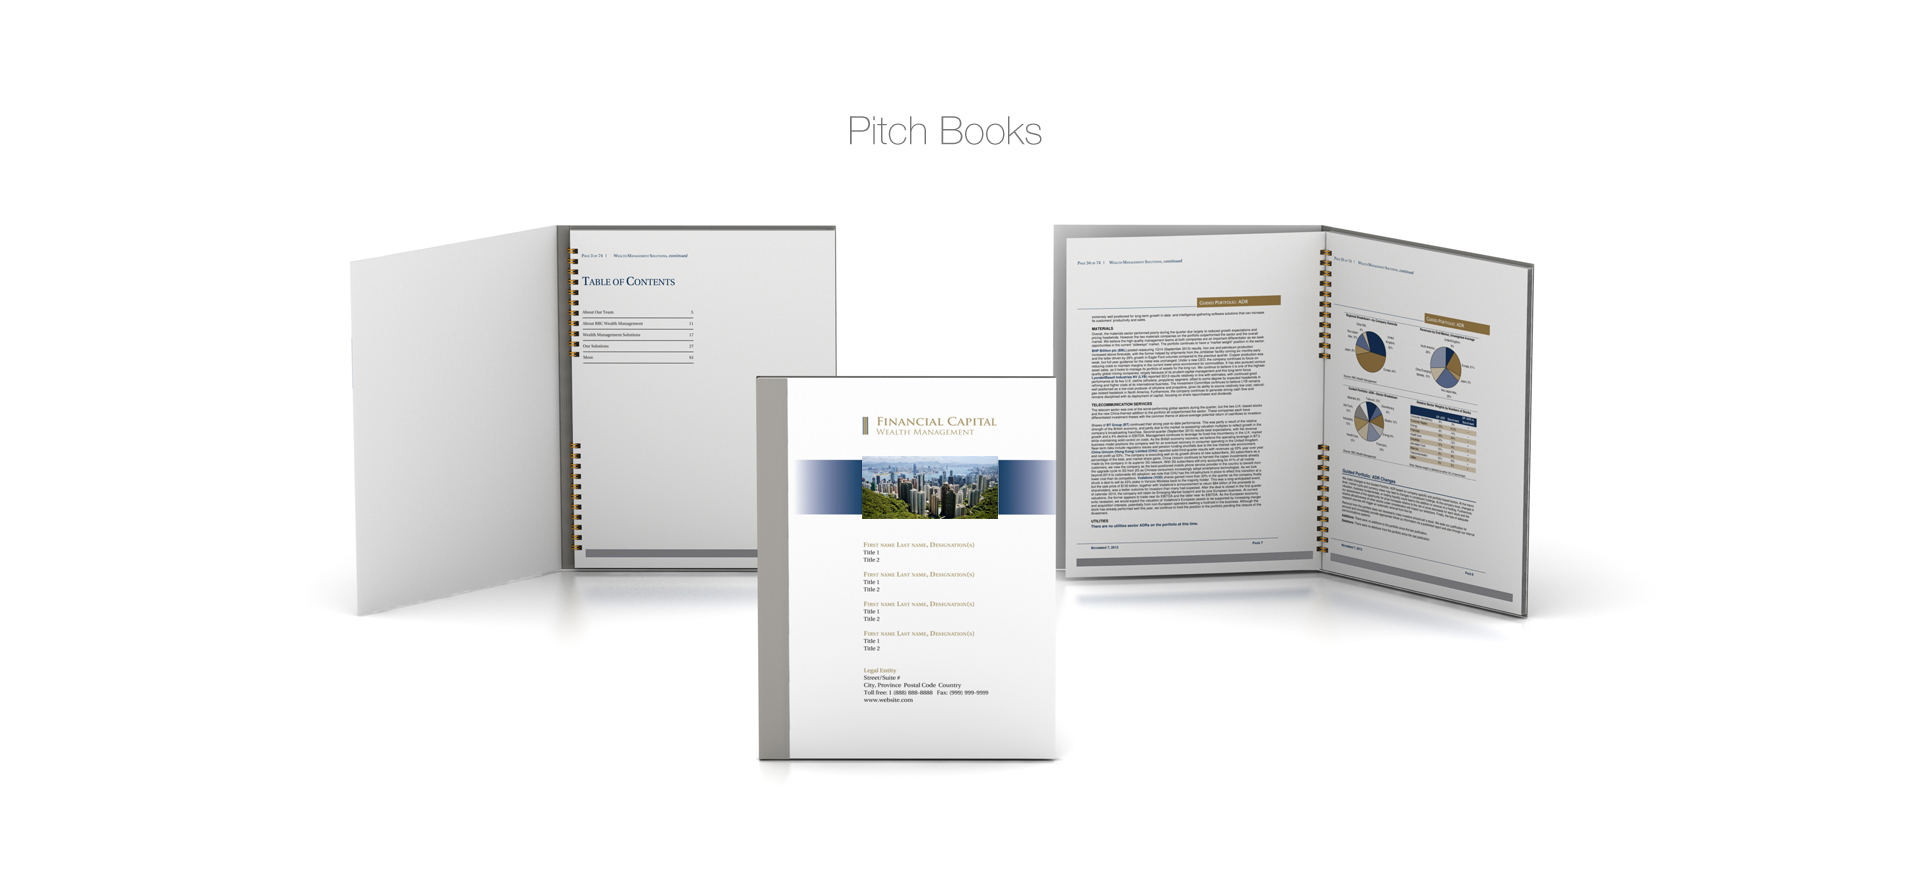 Imagine-Pitchbook-images-a